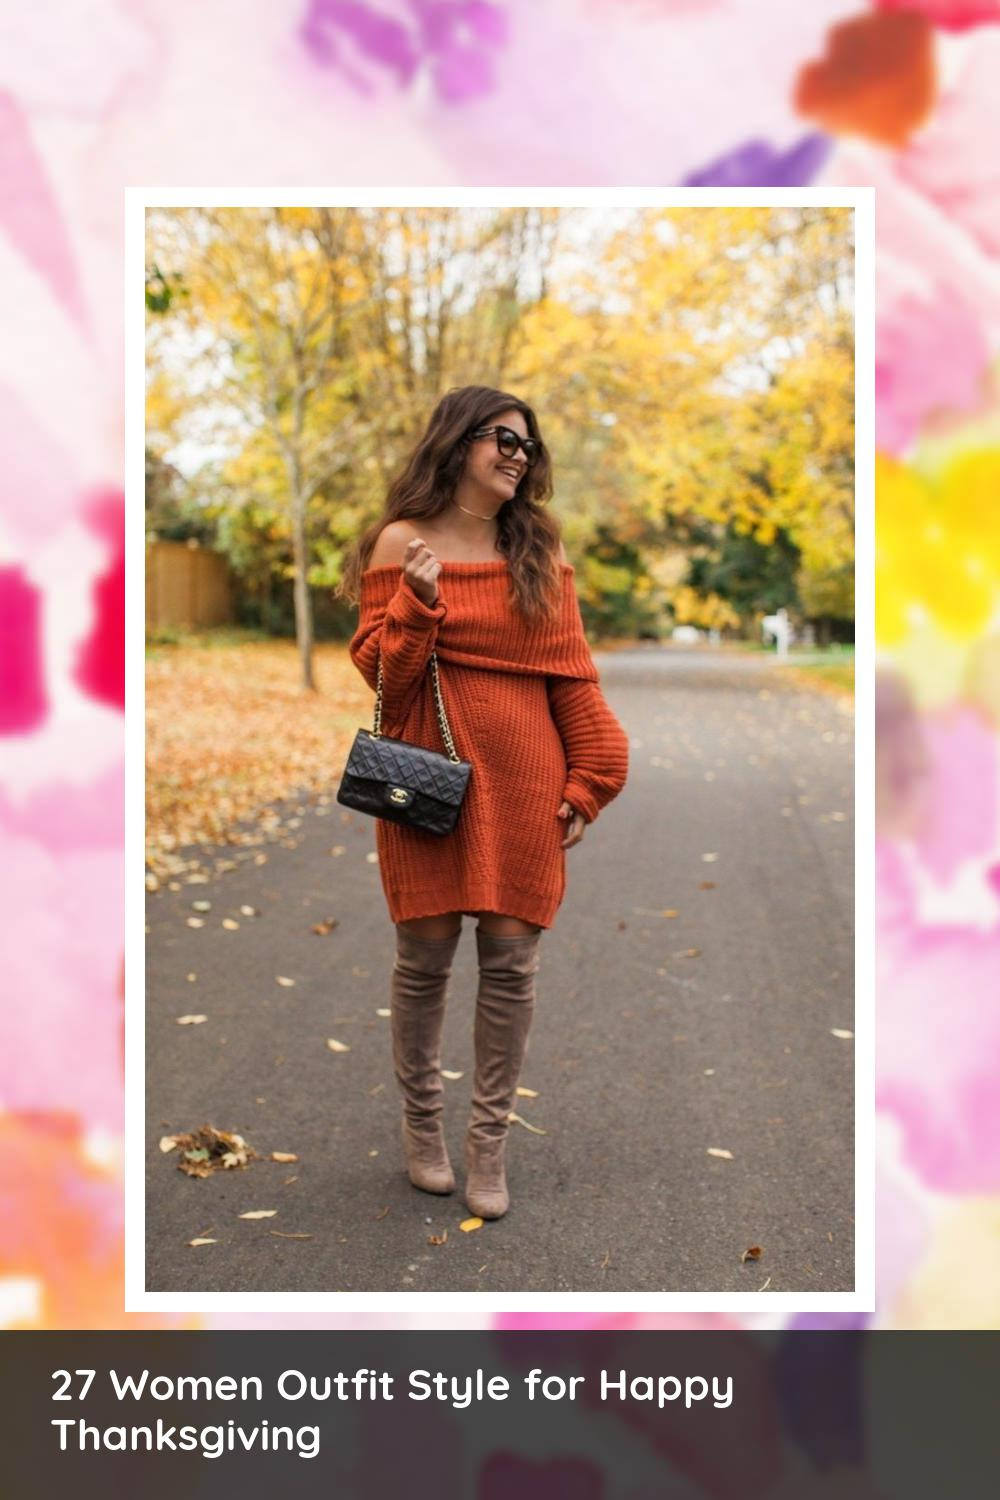 27 Women Outfit Style for Happy Thanksgiving 23